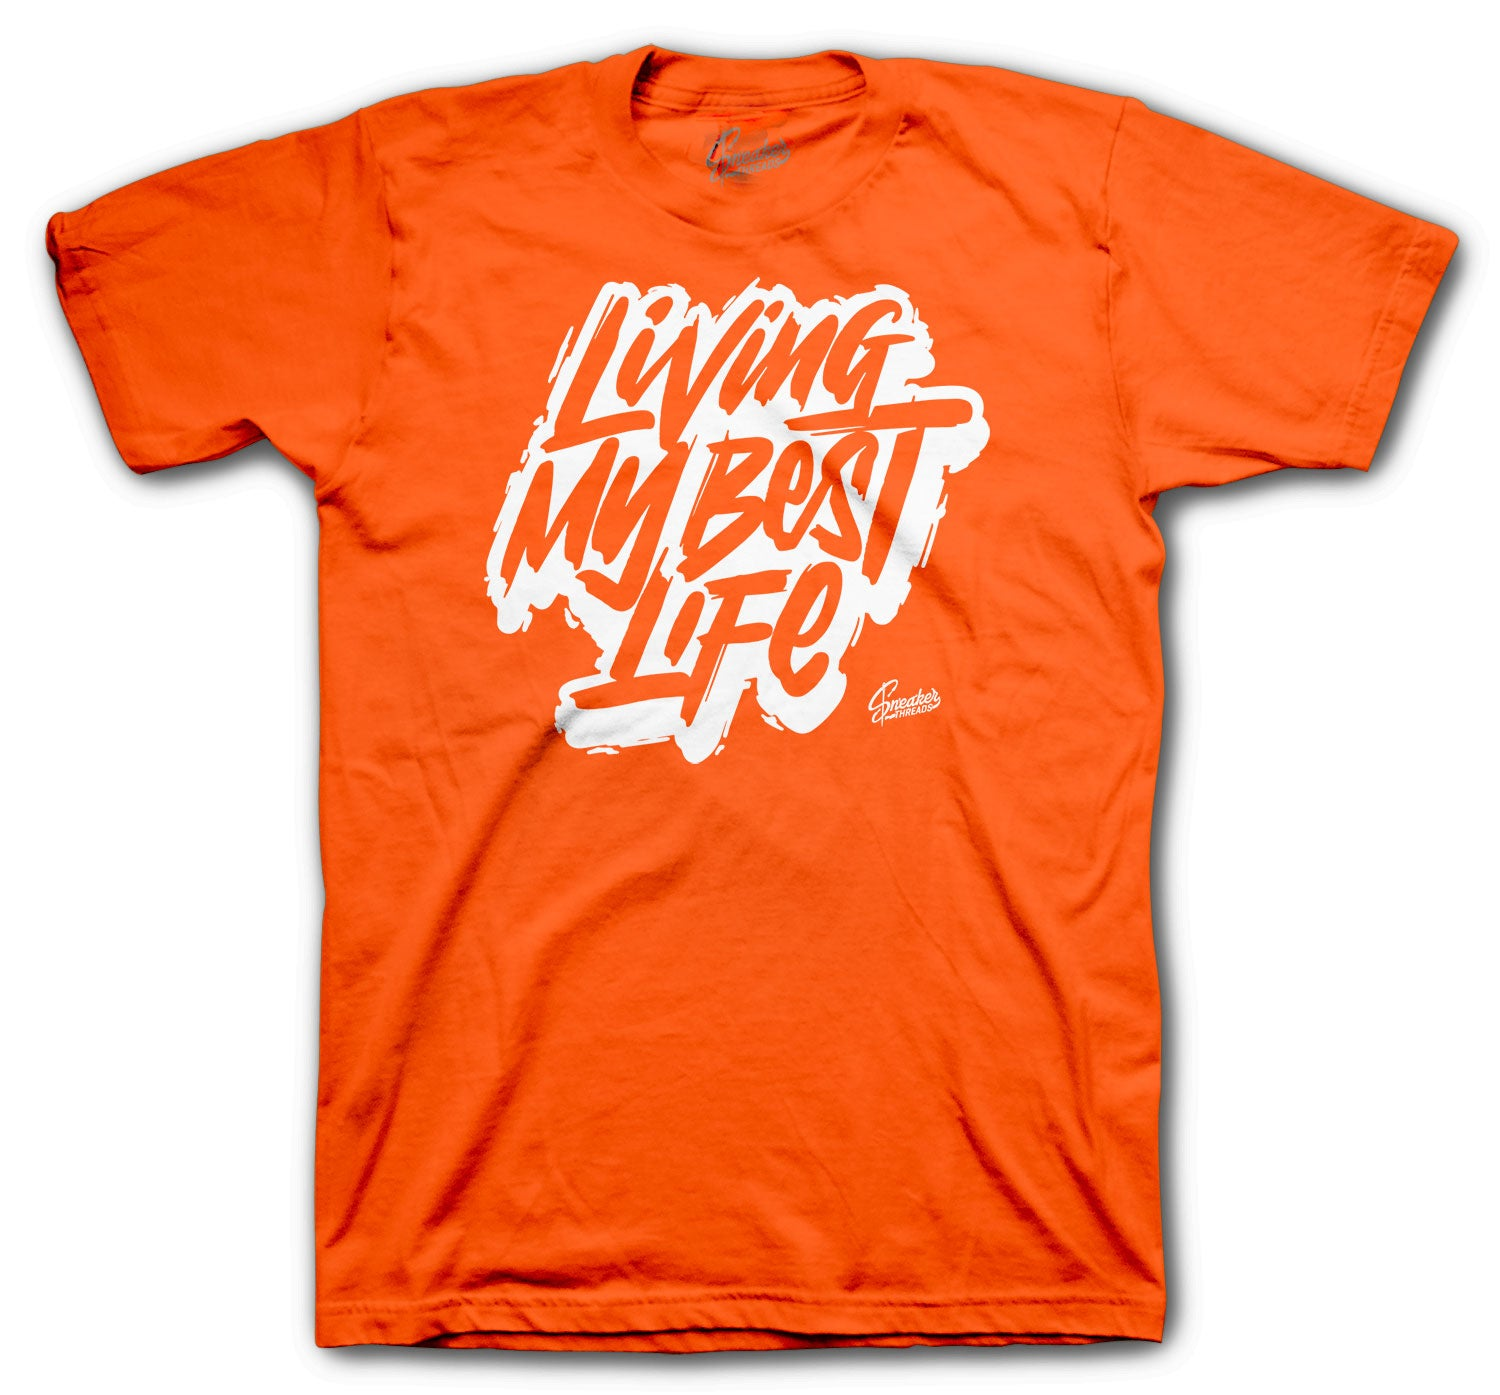 Orange tee collection matches with Jordan 4 orange metallic sneaker collection